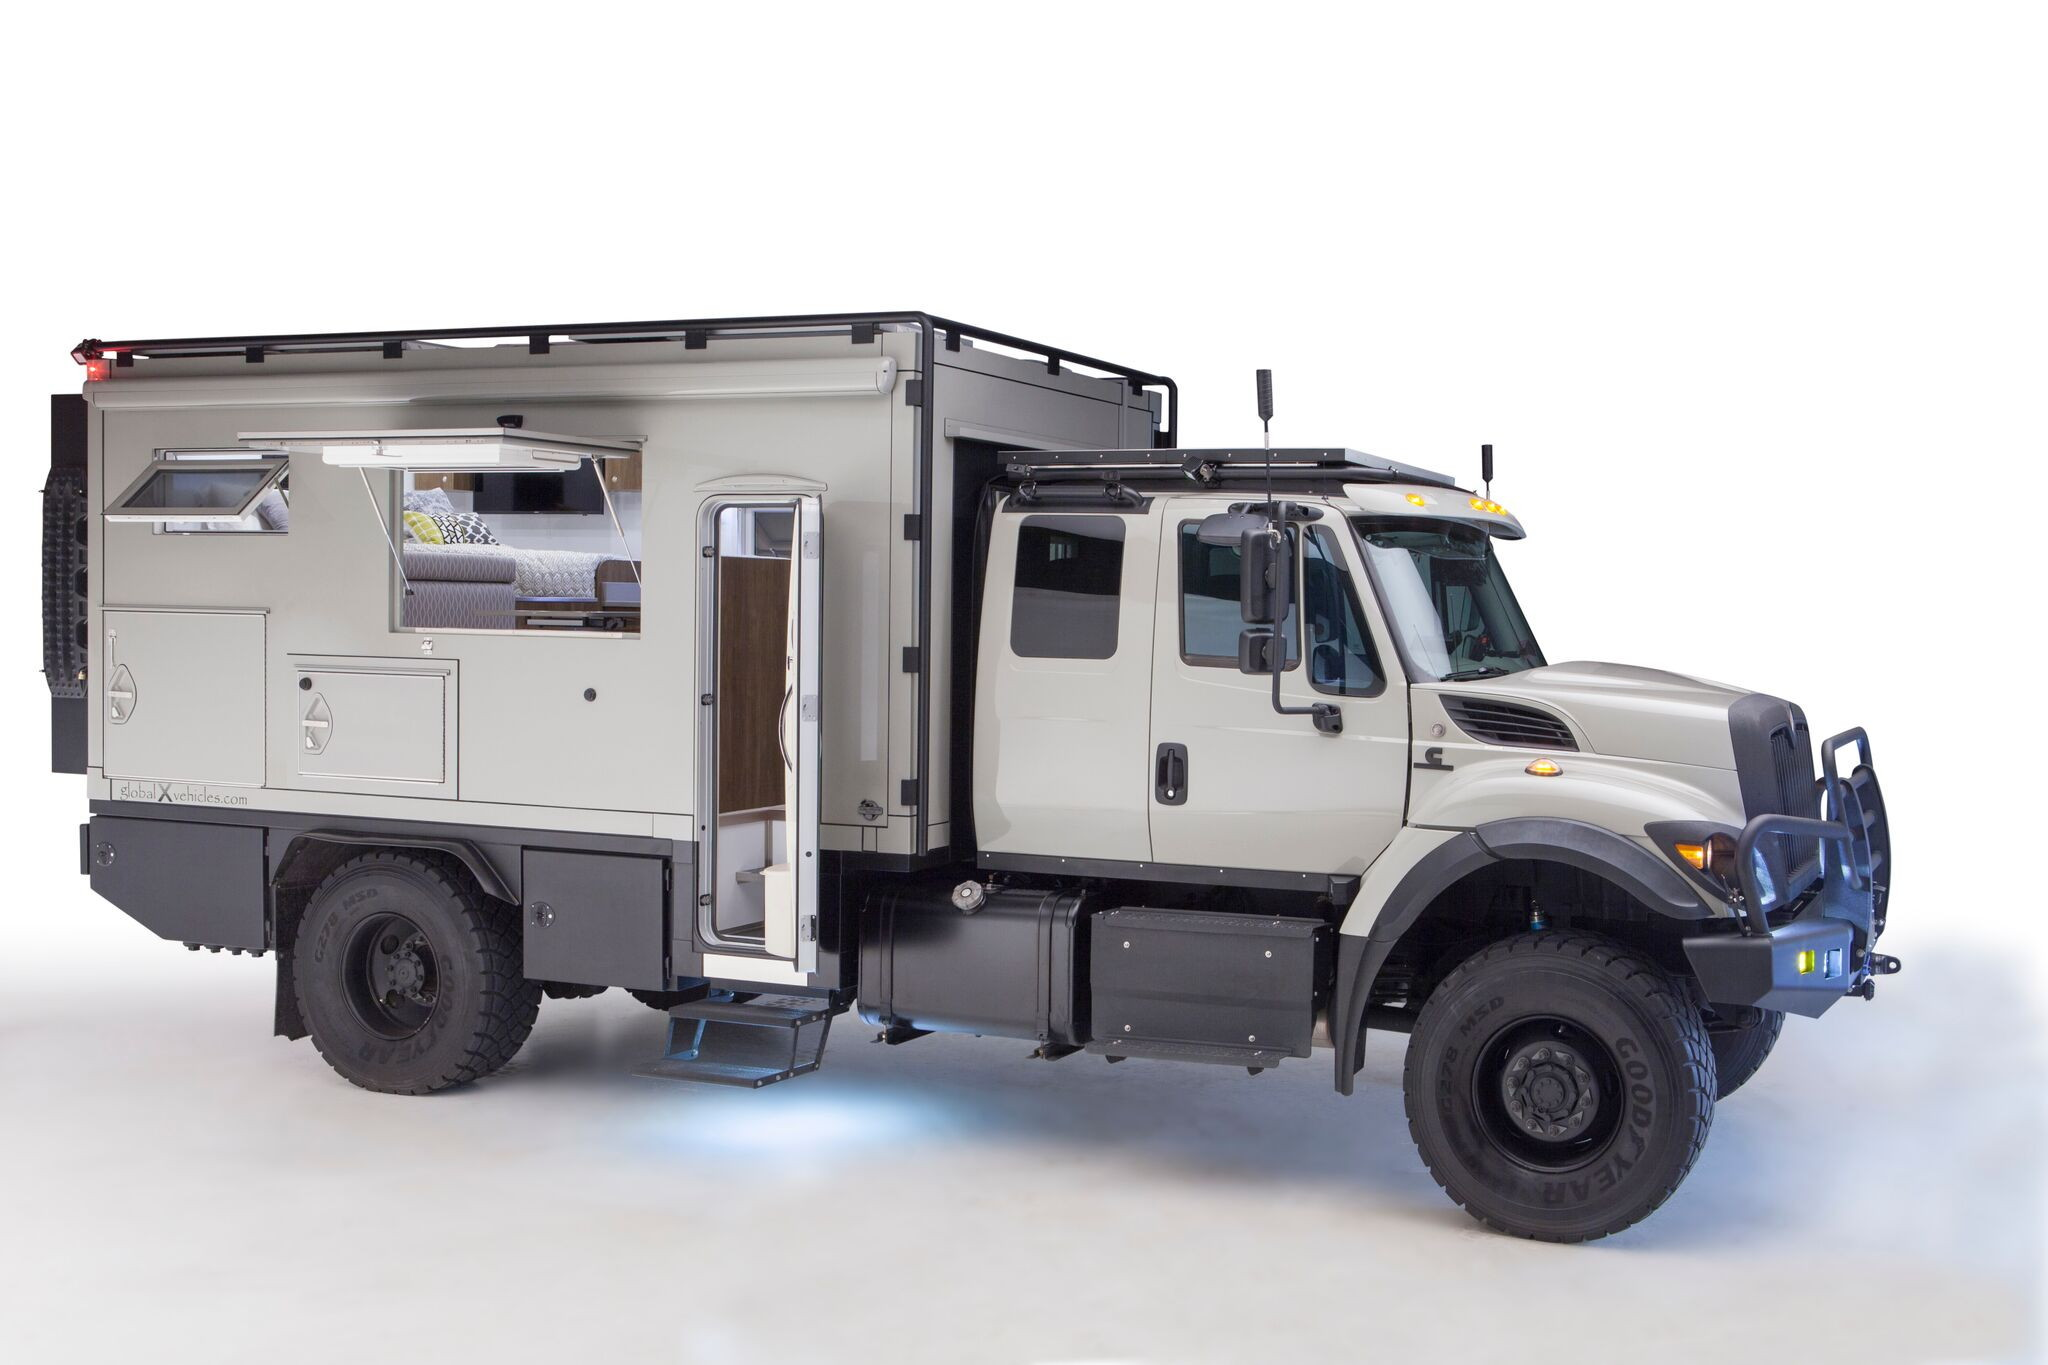 Safari Extreme Rocks Mobile Home World as Capable Expedition Vehicle for $650K